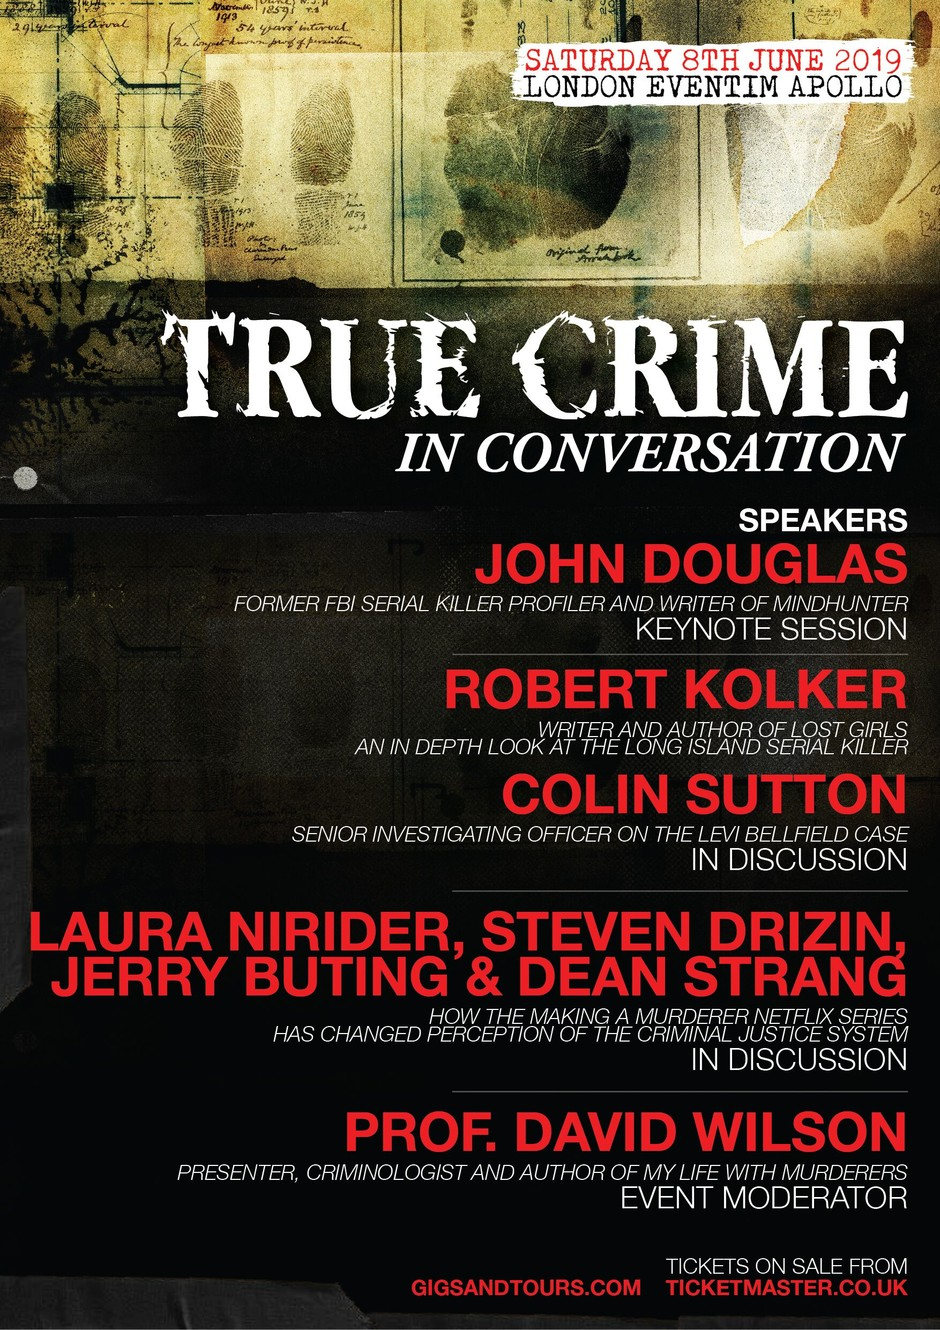 True Crime In Conversation poster